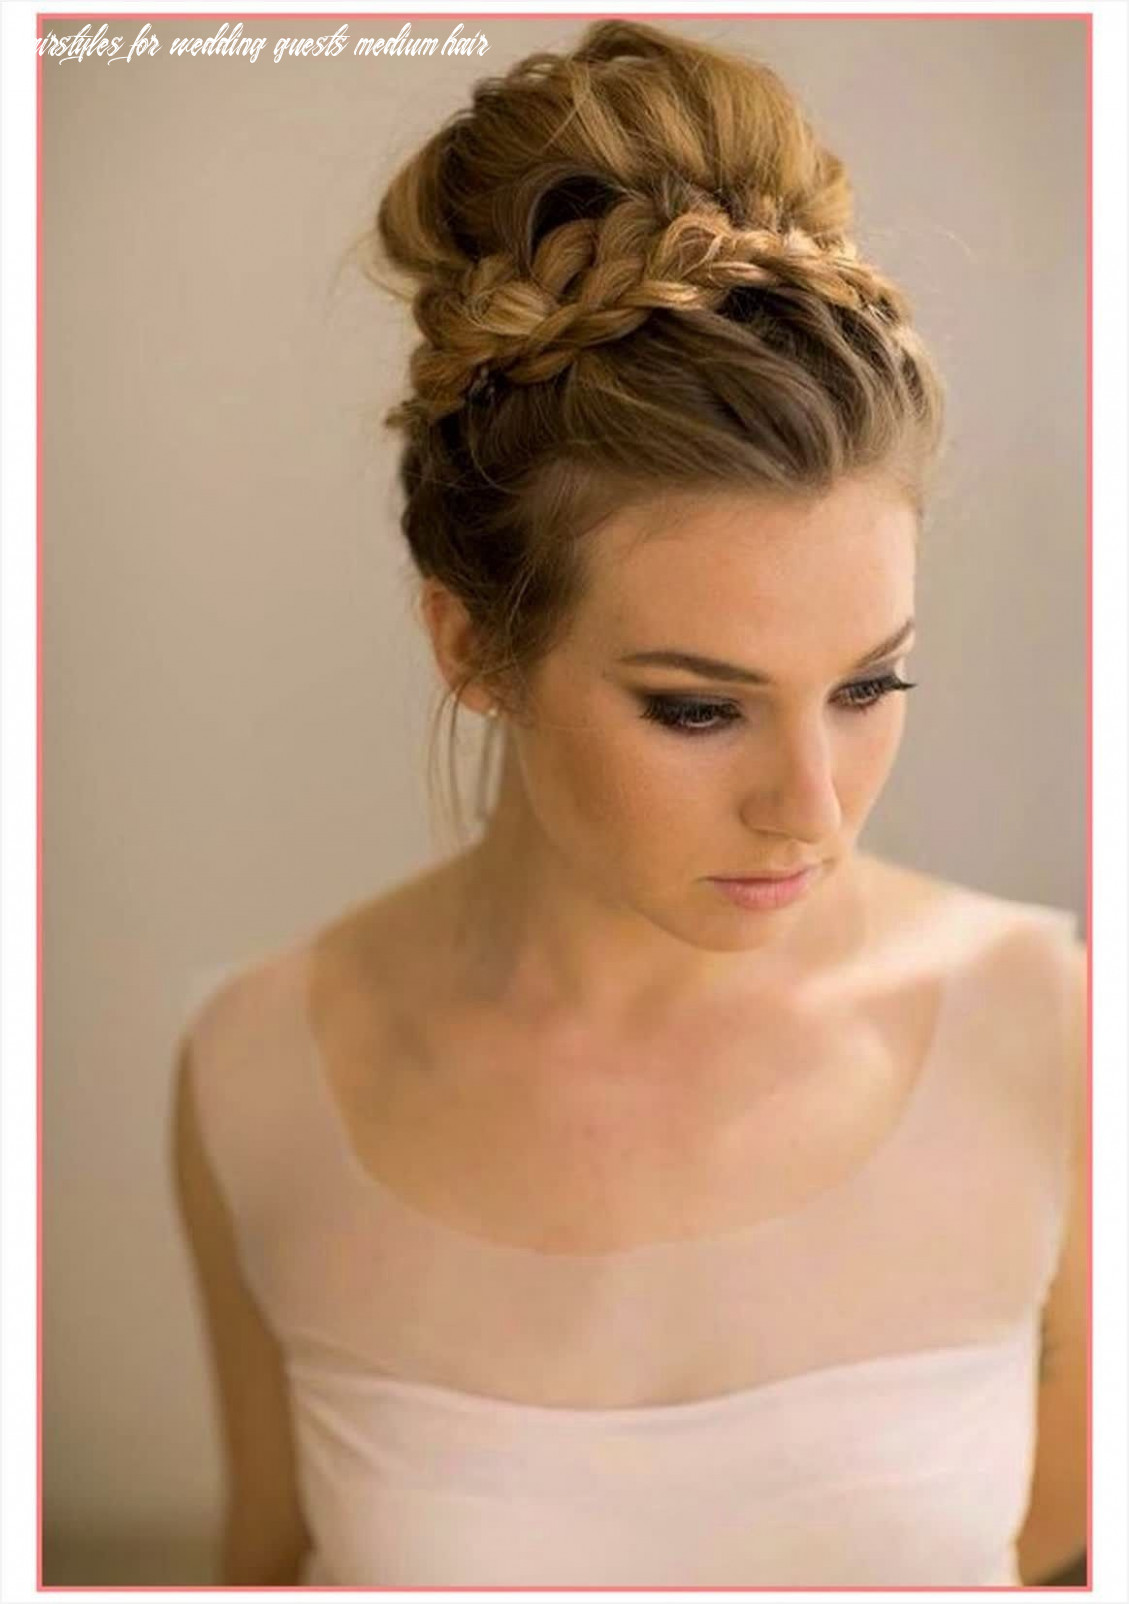 12 cute hairstyles for wedding guests 12 best wedding guest